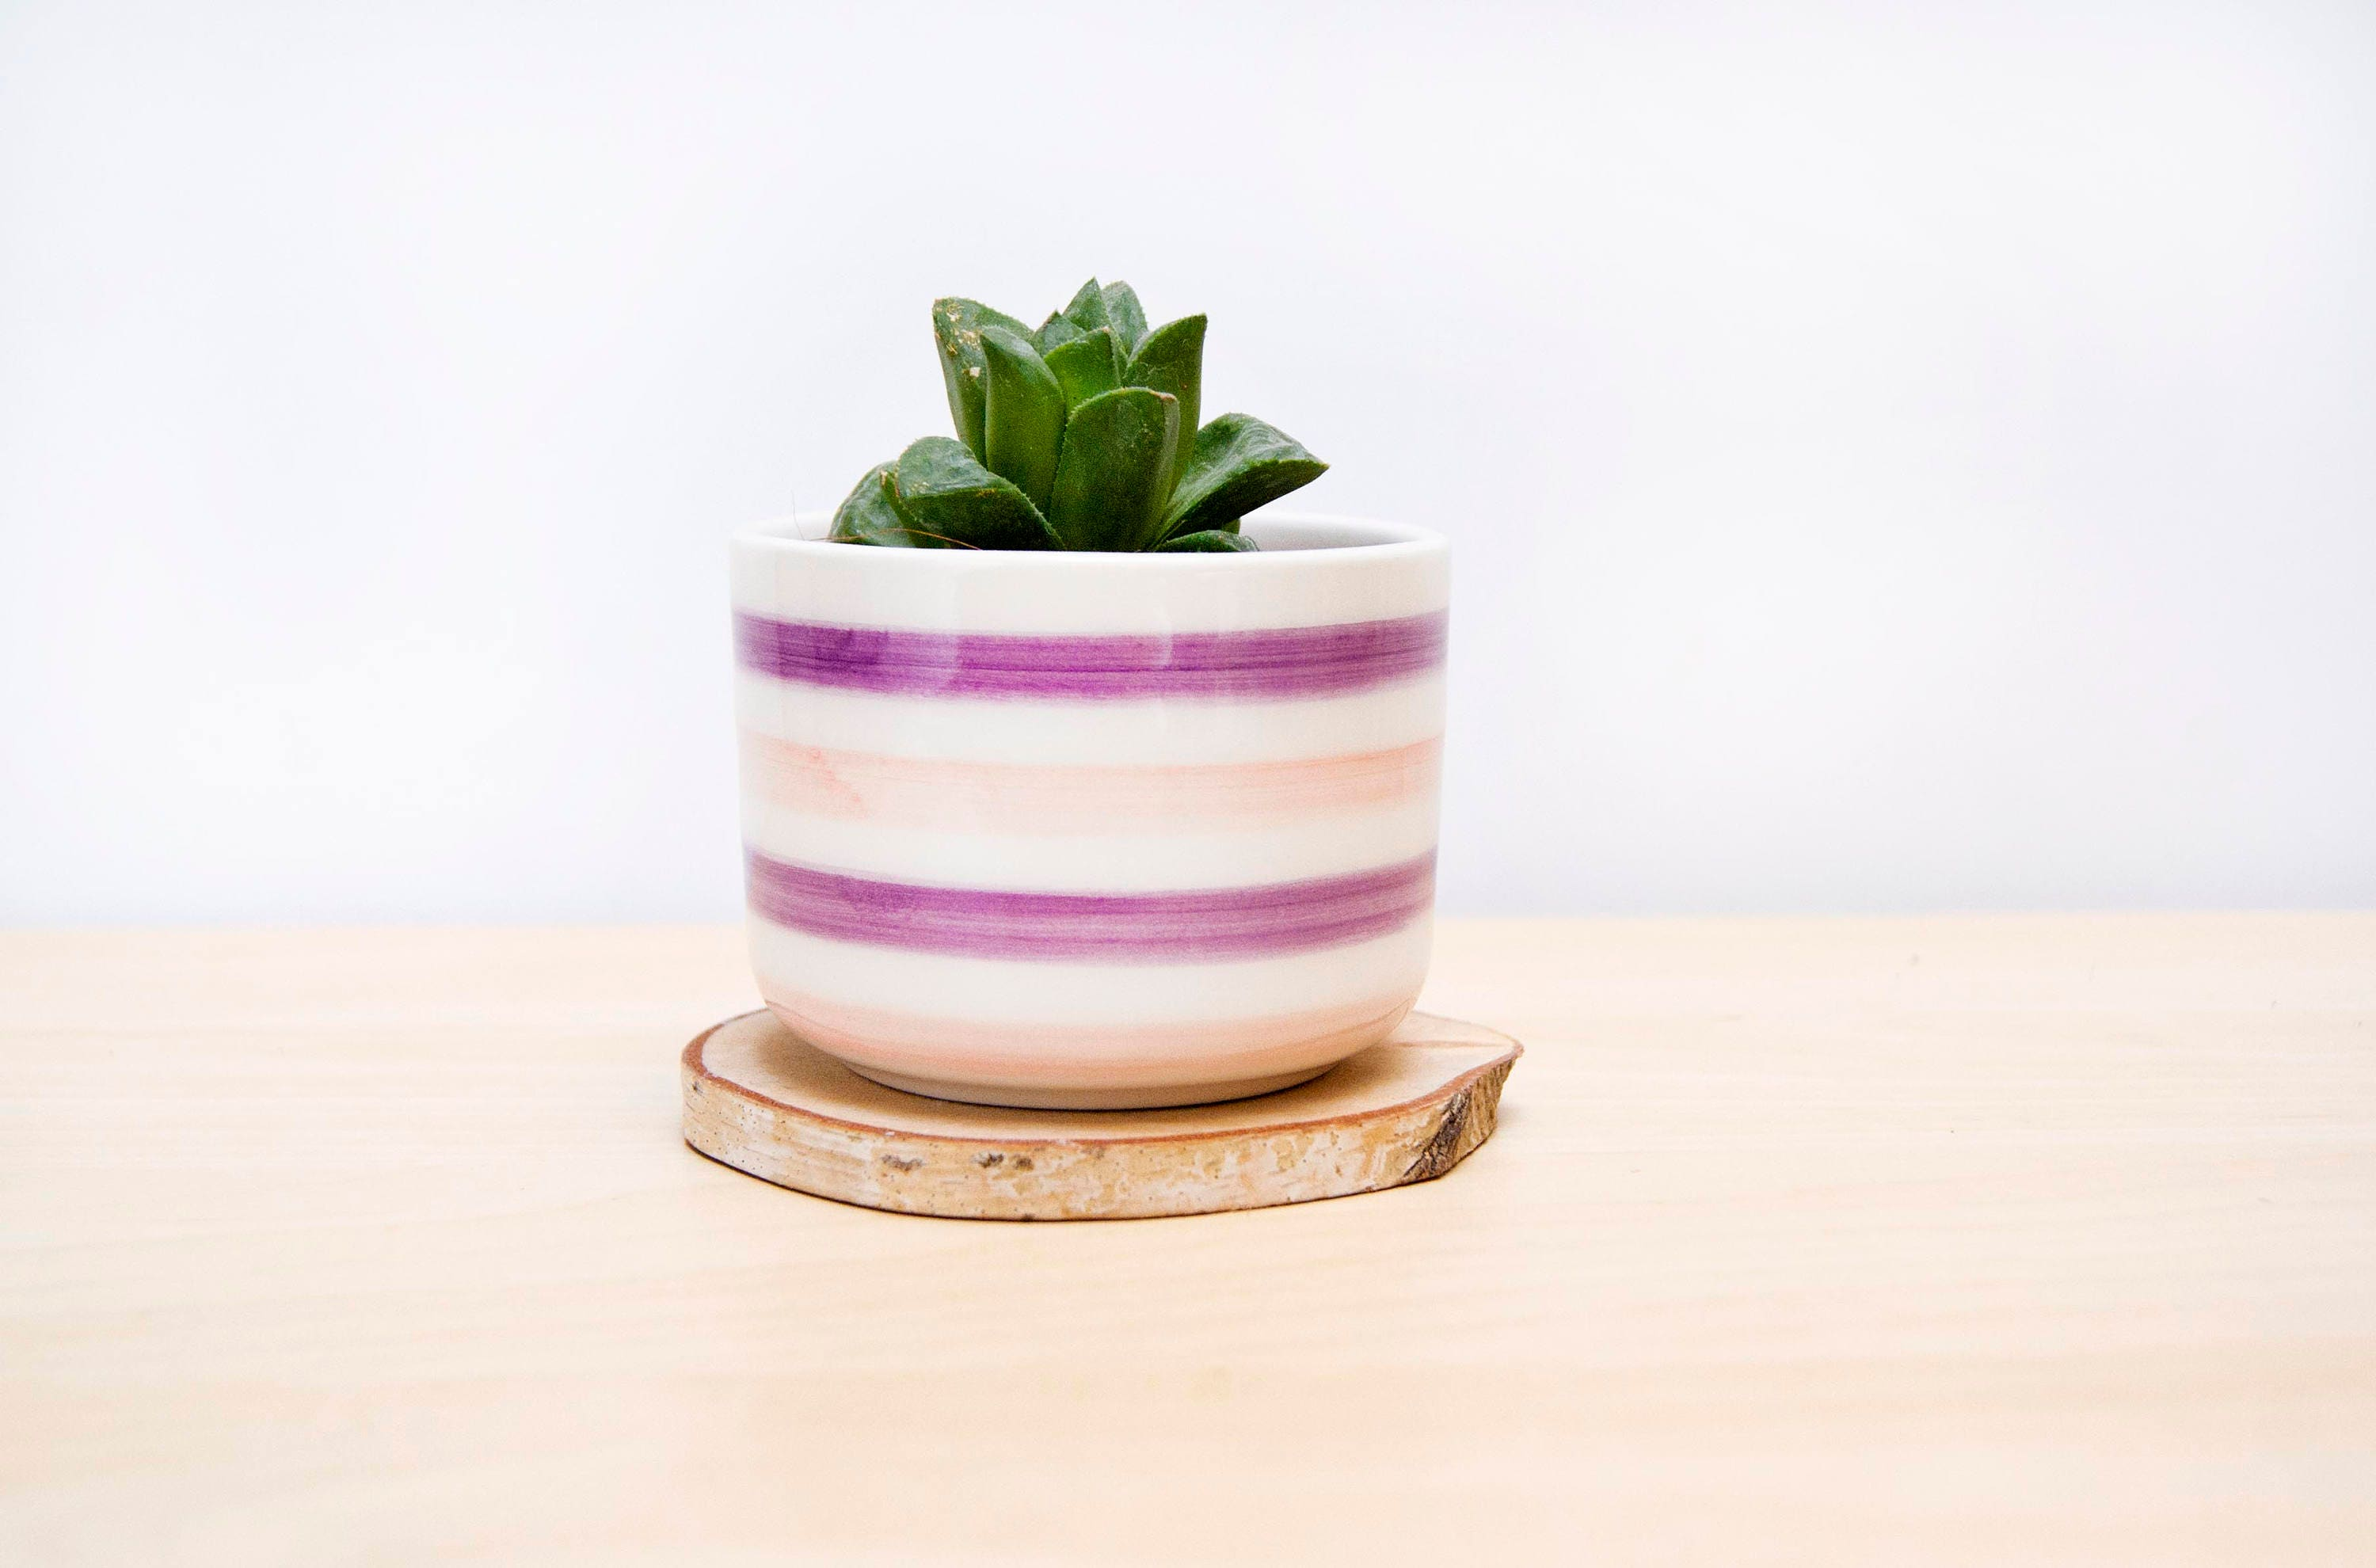 Ceramic Plant Pot Striped Ceramic Planter Succulent Planter